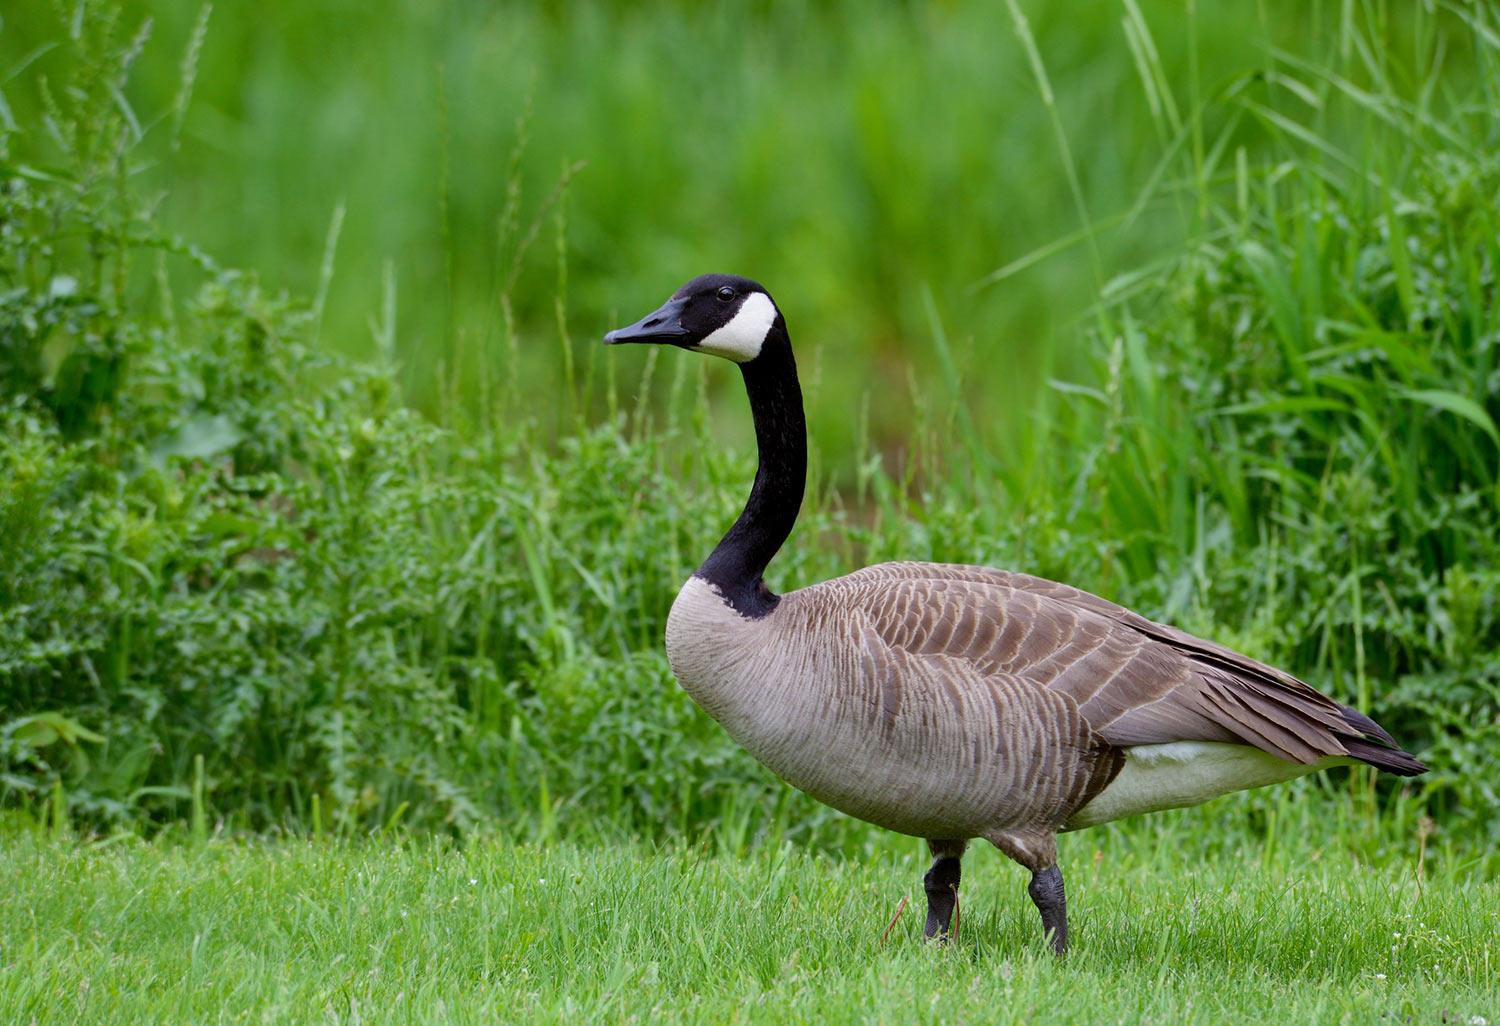 Canada Goose on the grass